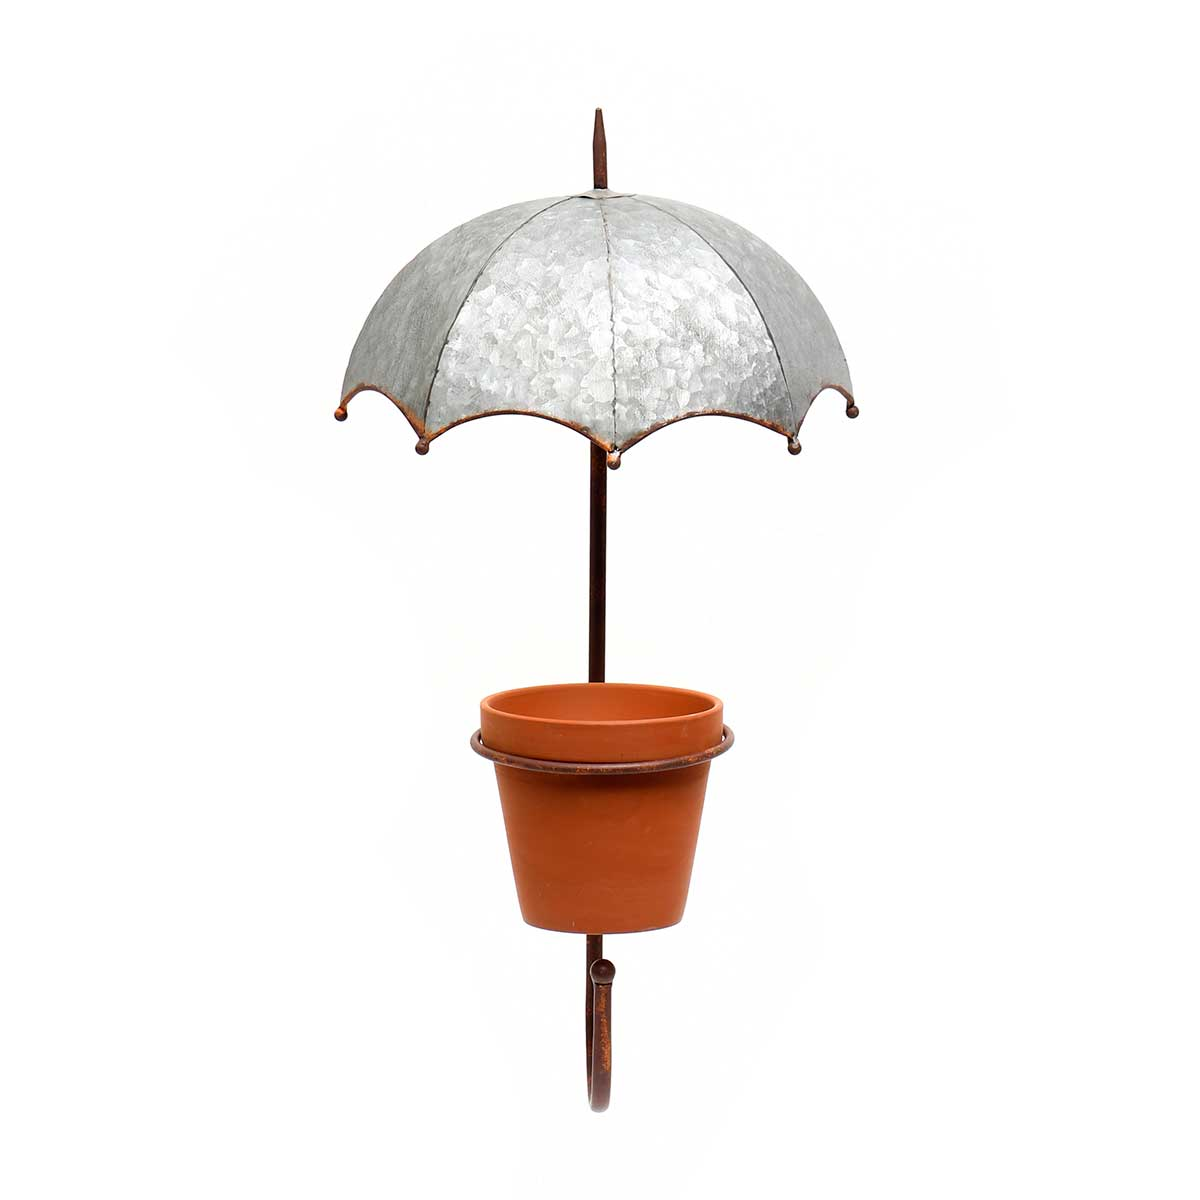 METAL GARDEN UMBRELLA WALL PLANTER AND CLAY POT WITH